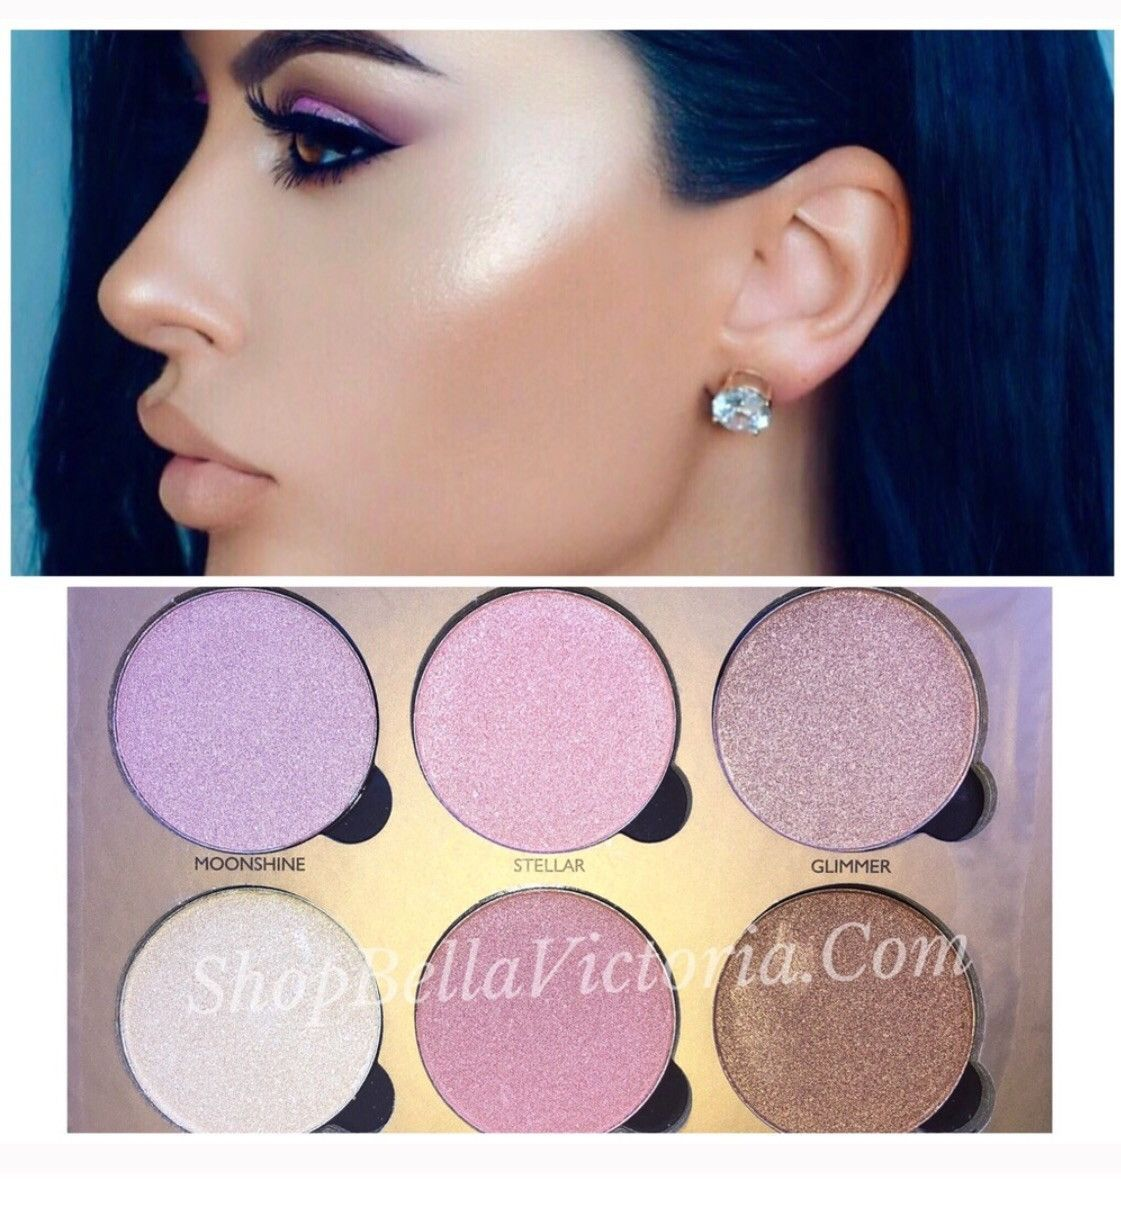 Sparkle shine glitter hair and makeup feathers shimmer - Glowing Highlight Shimmer Palette Okalan